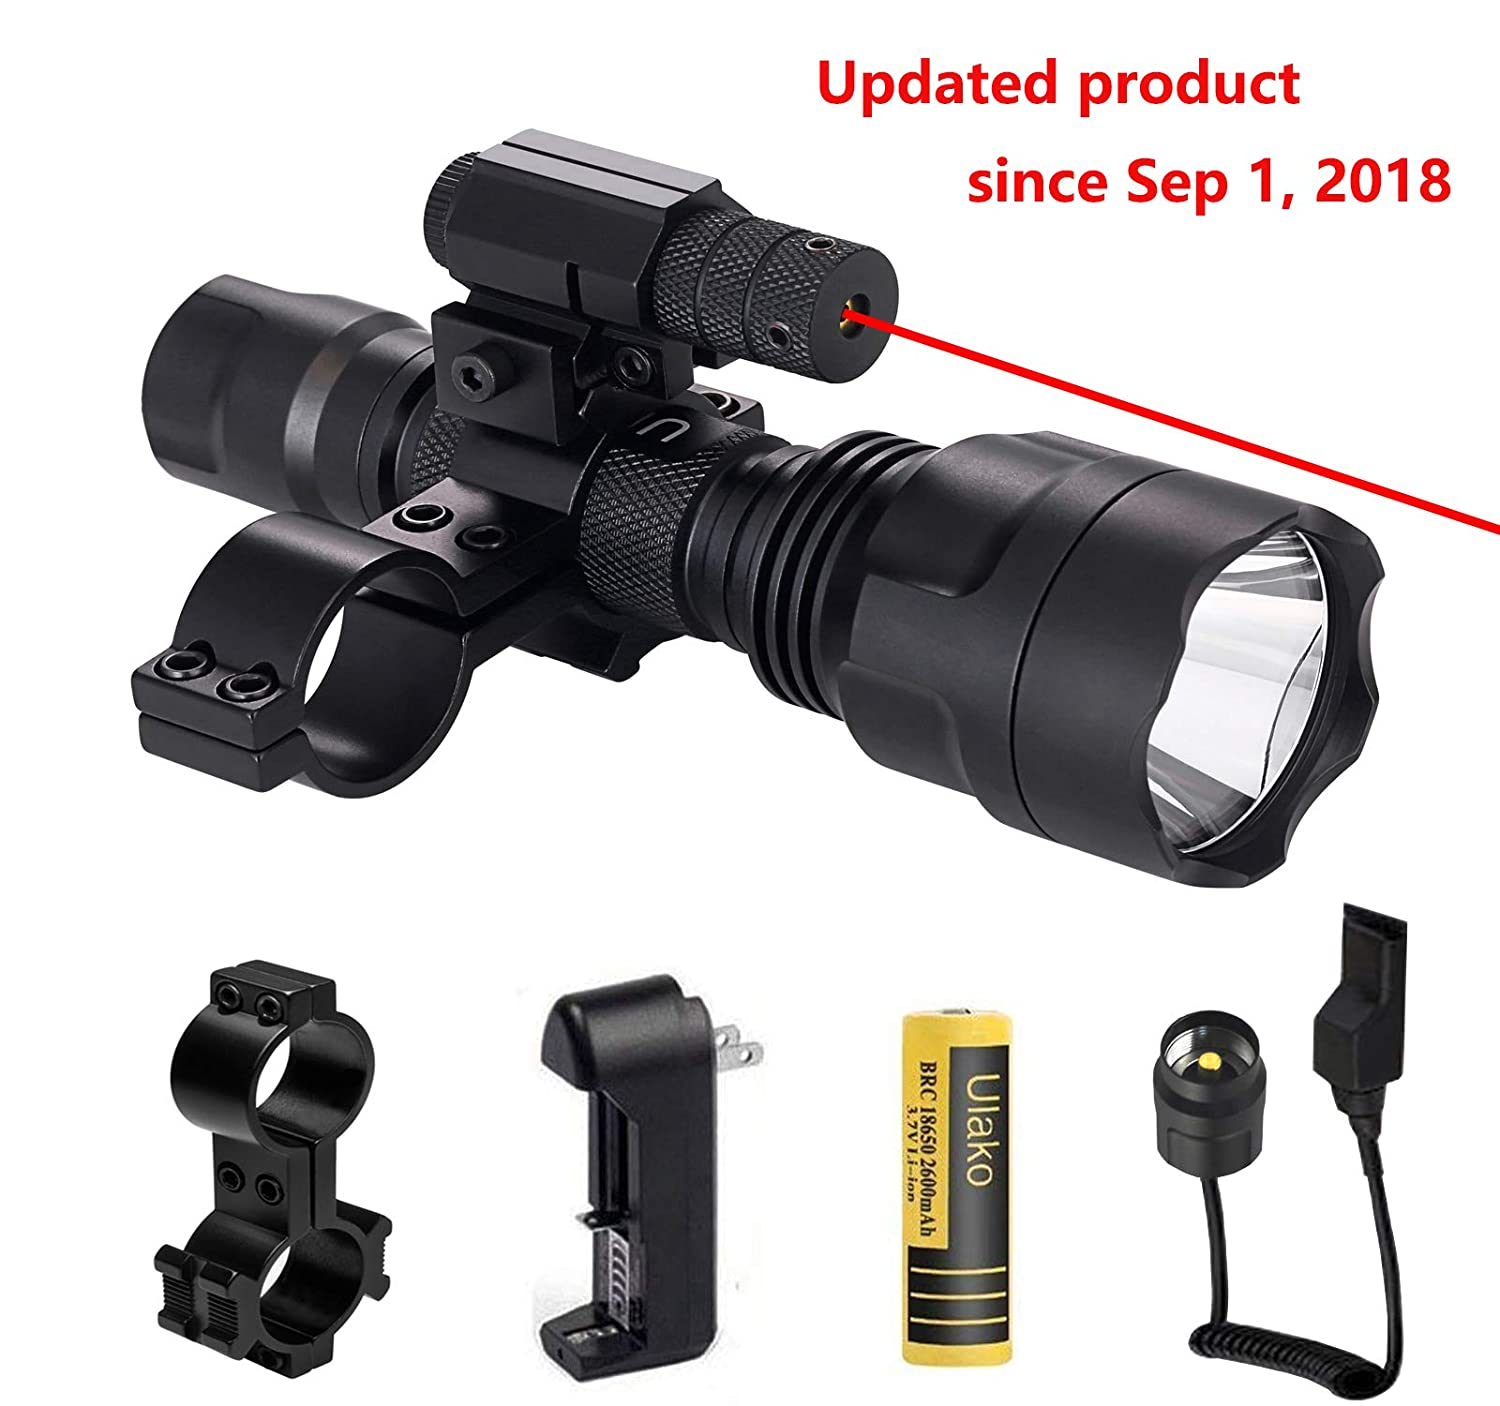 The Best Tactical Led Flashlight Set White Light Led Lamp Torch Zoomable Flashlight W/ 18650 Battery Charger Remote Control Tail Switch Portable Lighting